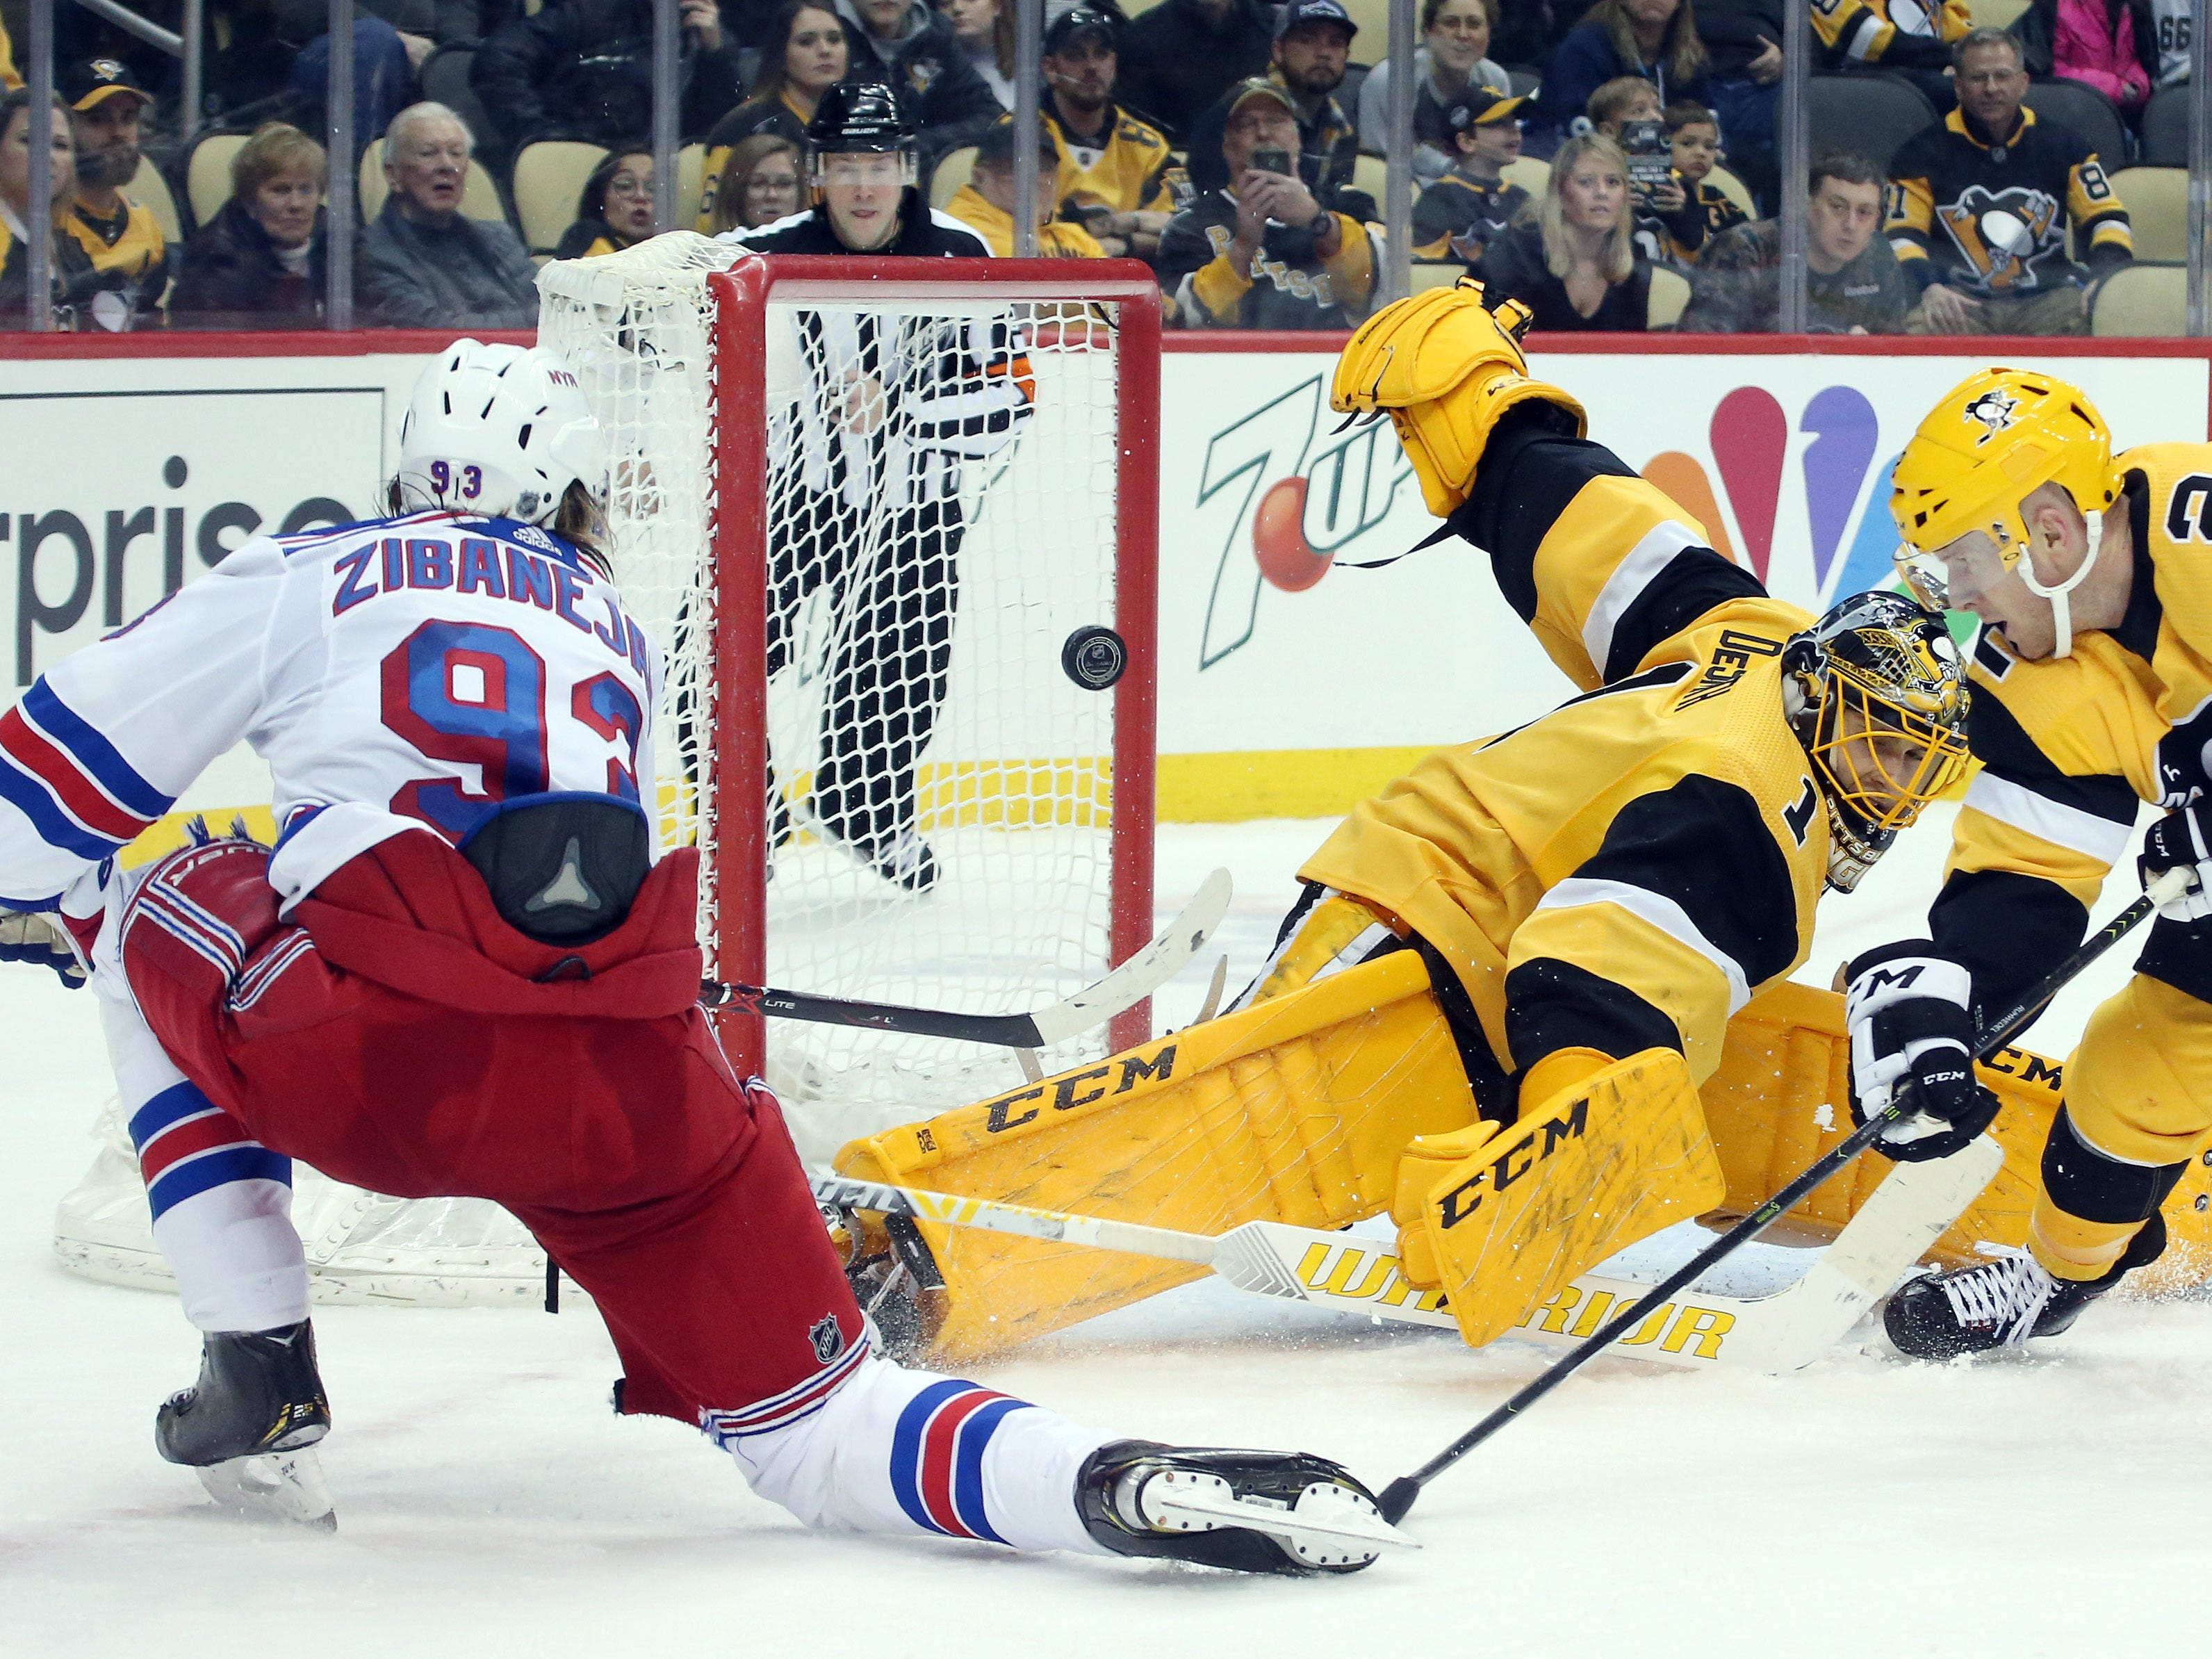 Feb. 17:  New York Rangers center Mika Zibanejad (93) scores a goal against Pittsburgh Penguins goaltender Casey DeSmith during the third period at PPG PAINTS Arena. The Penguins won the game, 6-5.